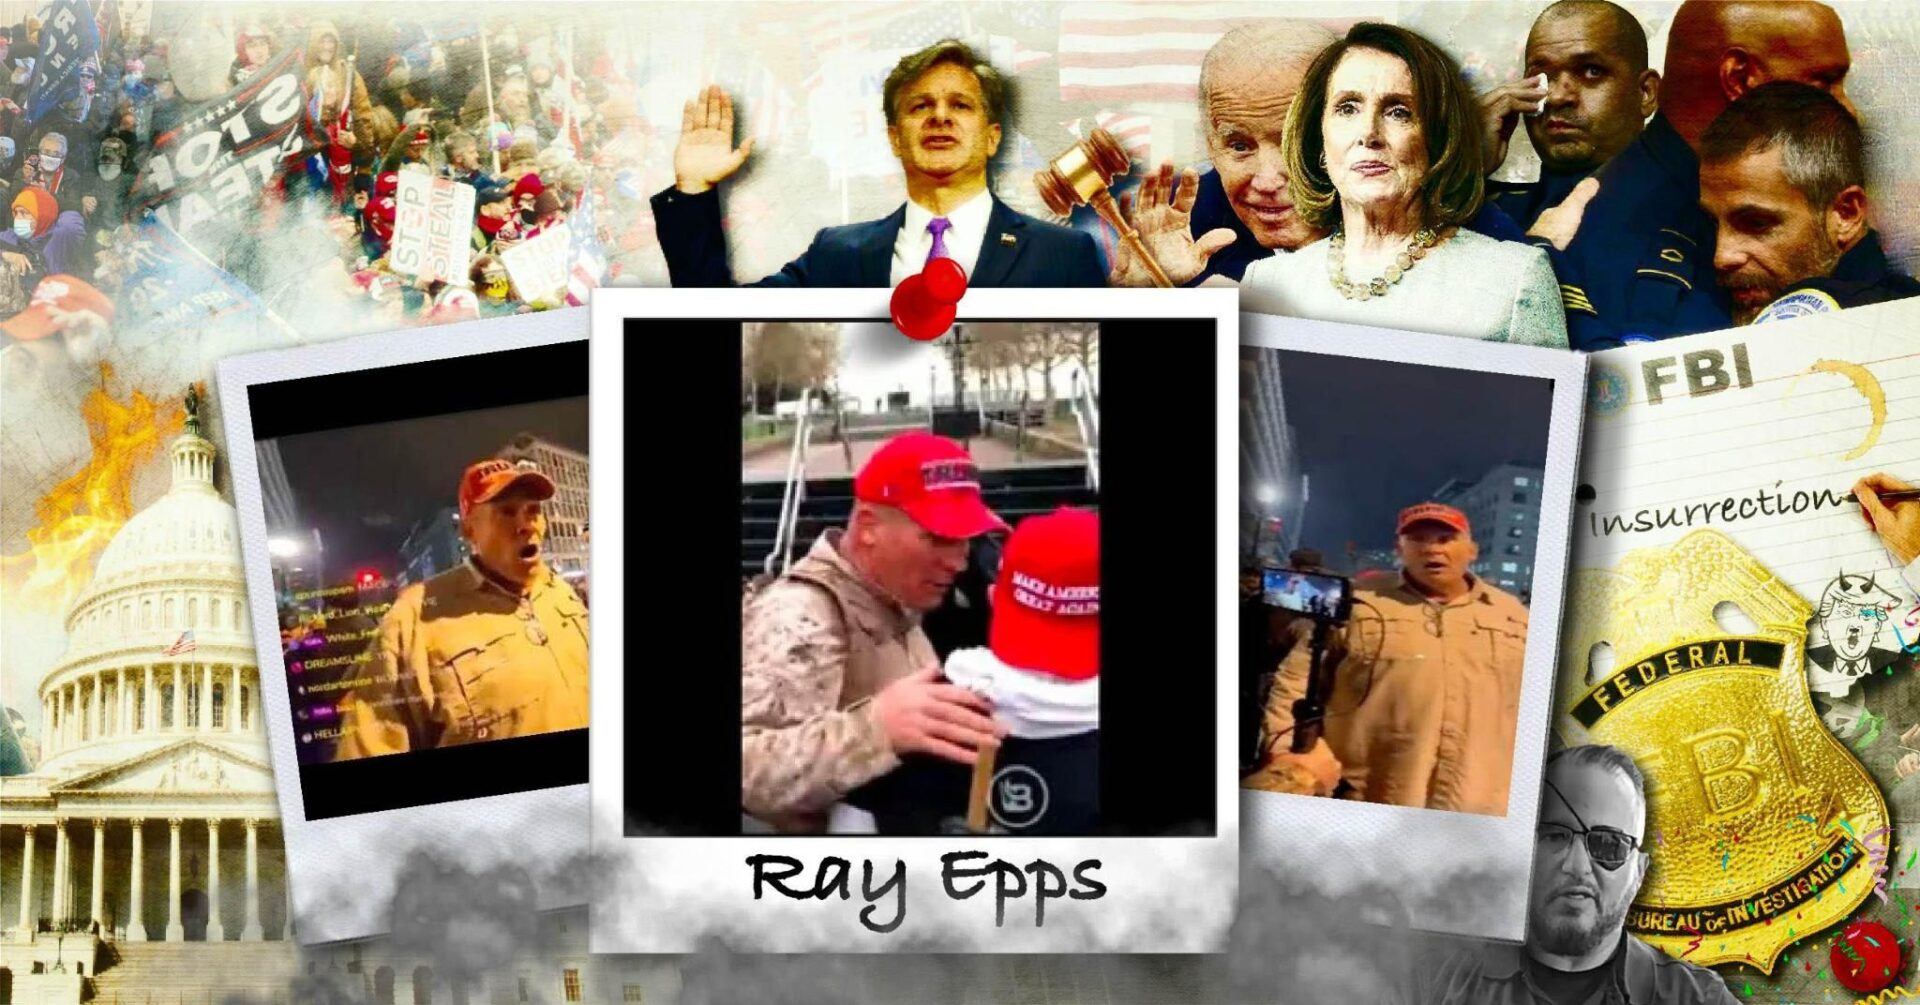 Meet Ray Epps: The Fed-Protected Provocateur Who Appears To Have Led The Very First 1/6 Attack On The U.S. Capitol - Revolver